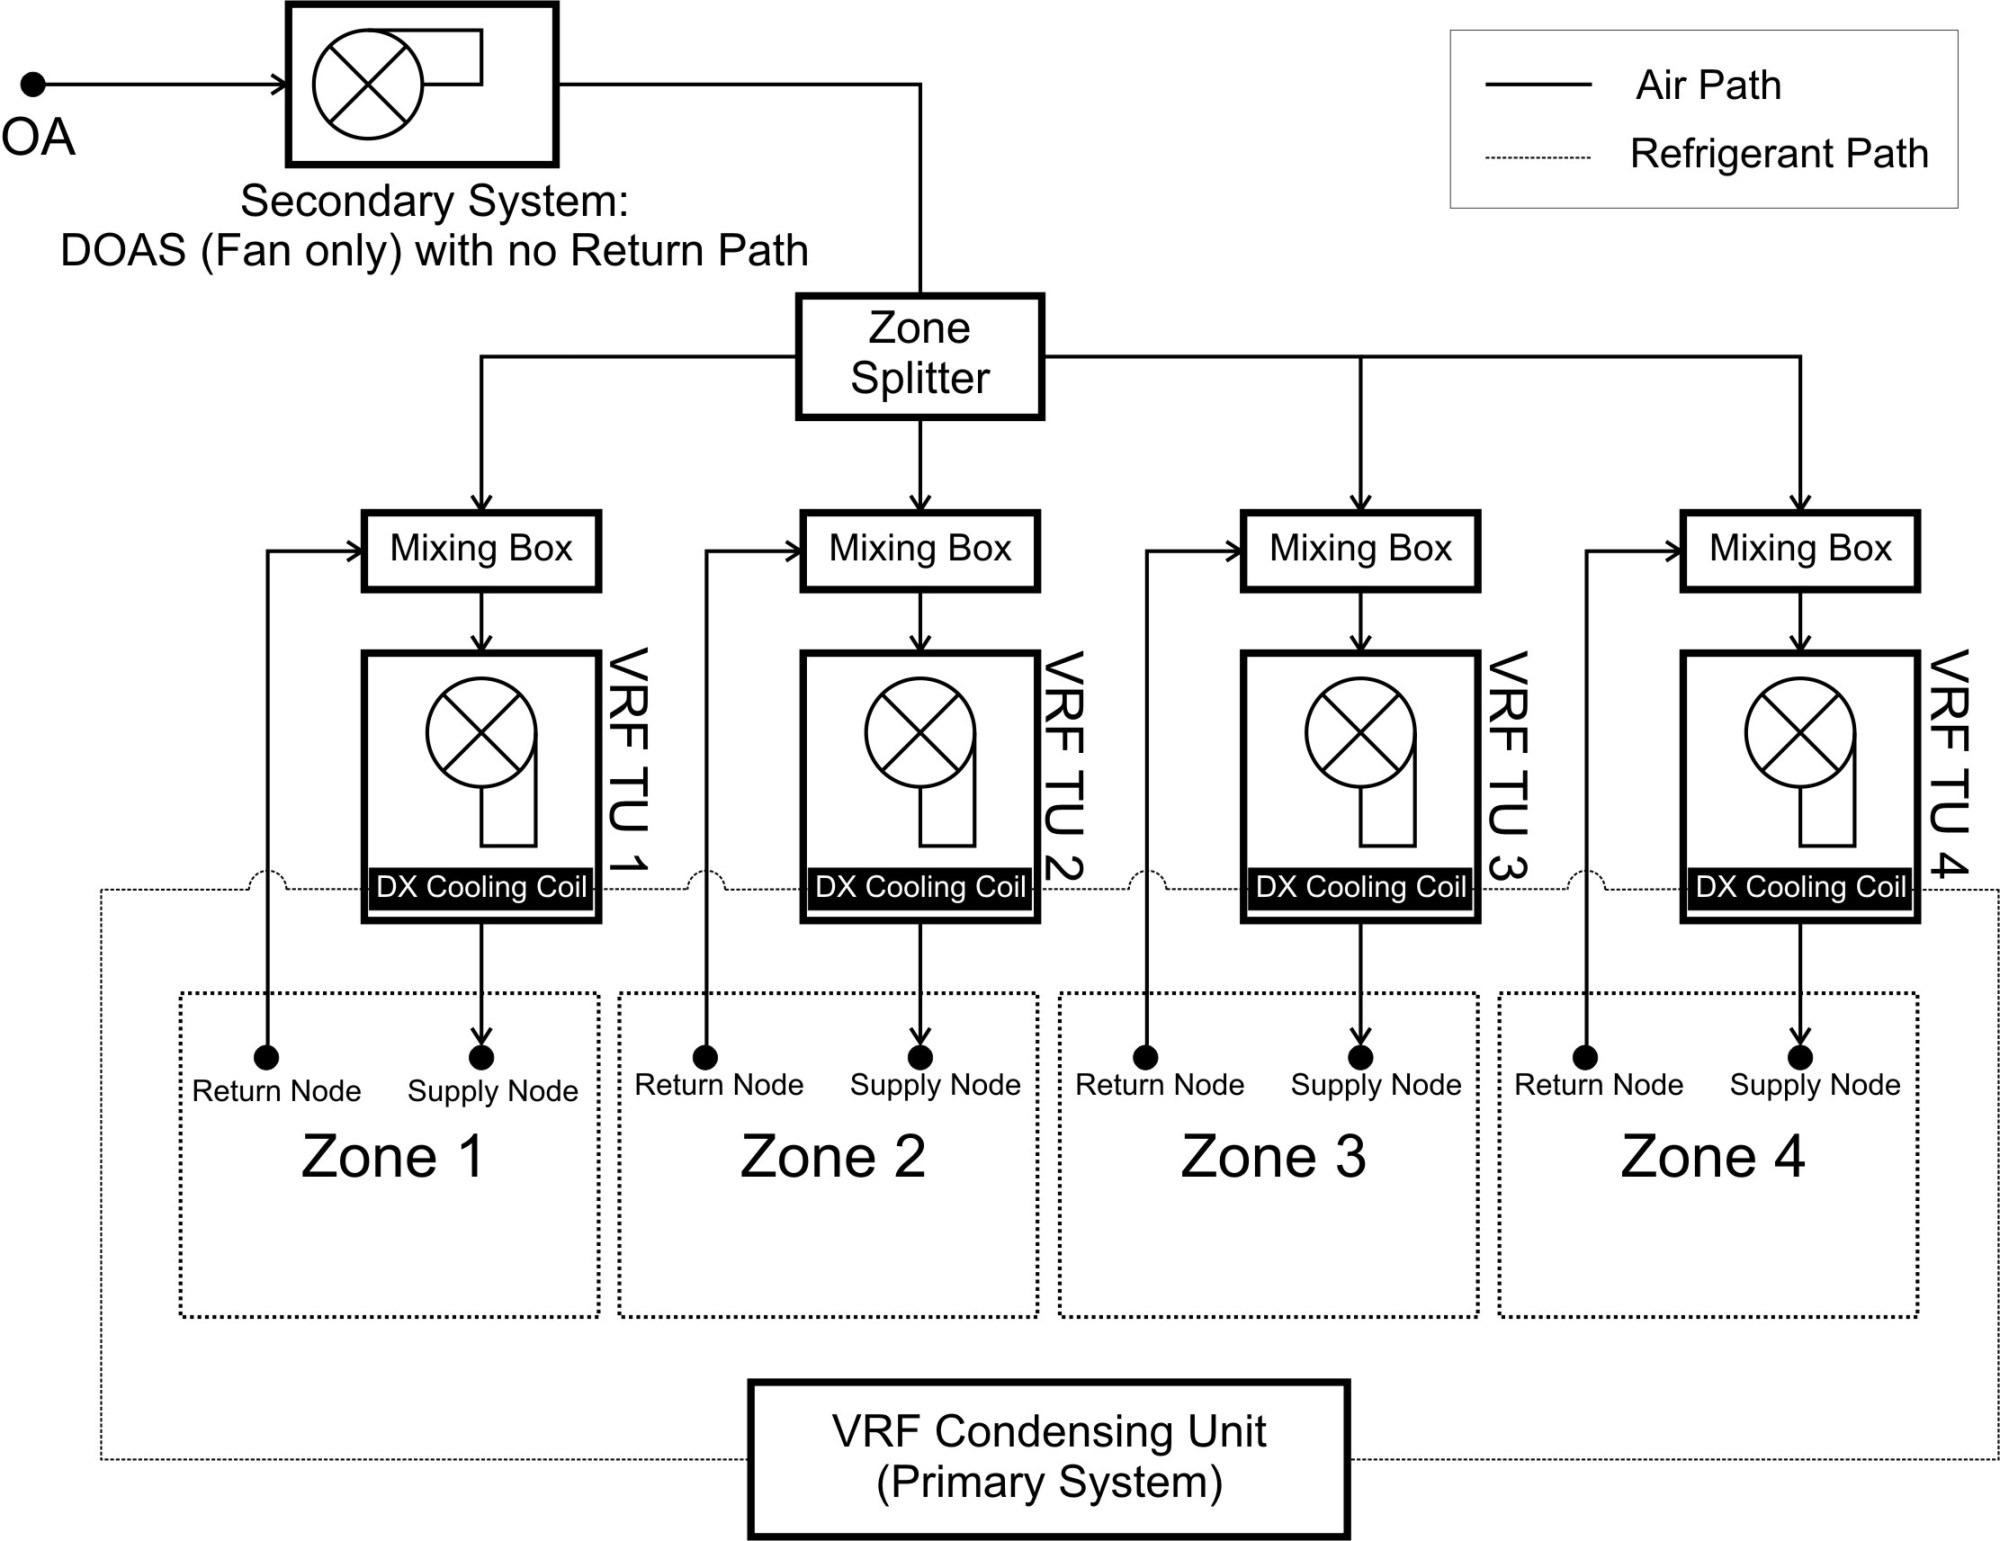 hight resolution of diagram jpg here i attached the complete diagram of my hvac system is there any suggestion how should i model these in eplus